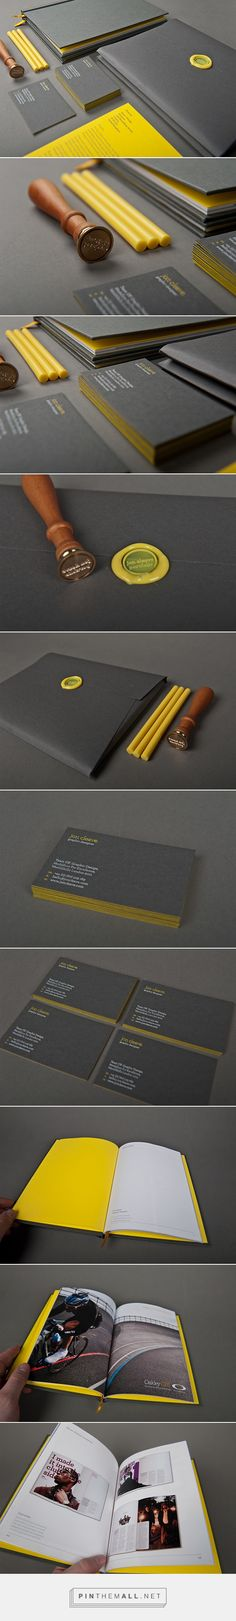 Self promotional material on Behance - created via https://pinthemall.net